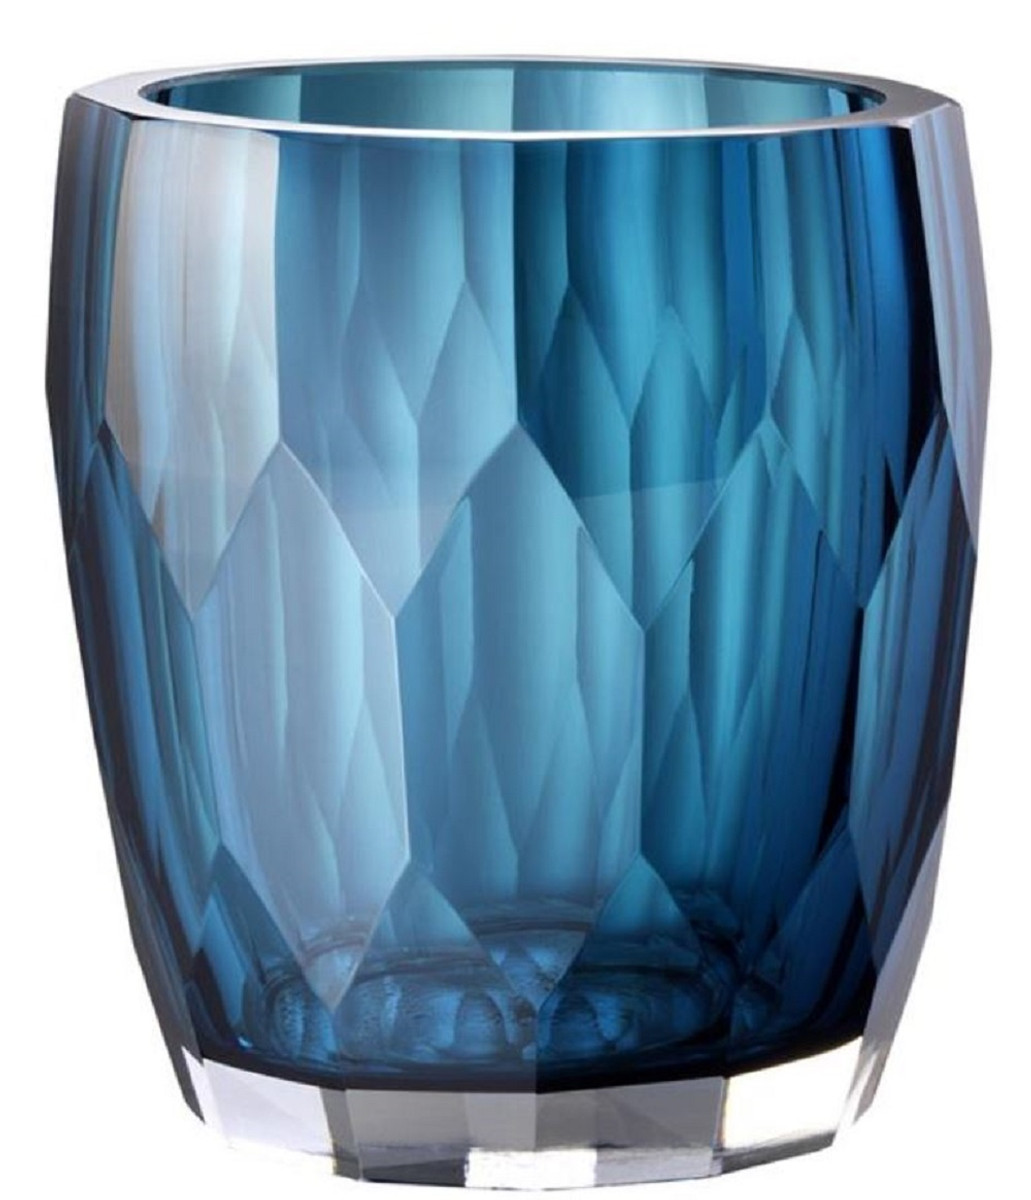 Casa Padrino Luxury Decorative Glass Vase Blue O 12 X H 14 Cm